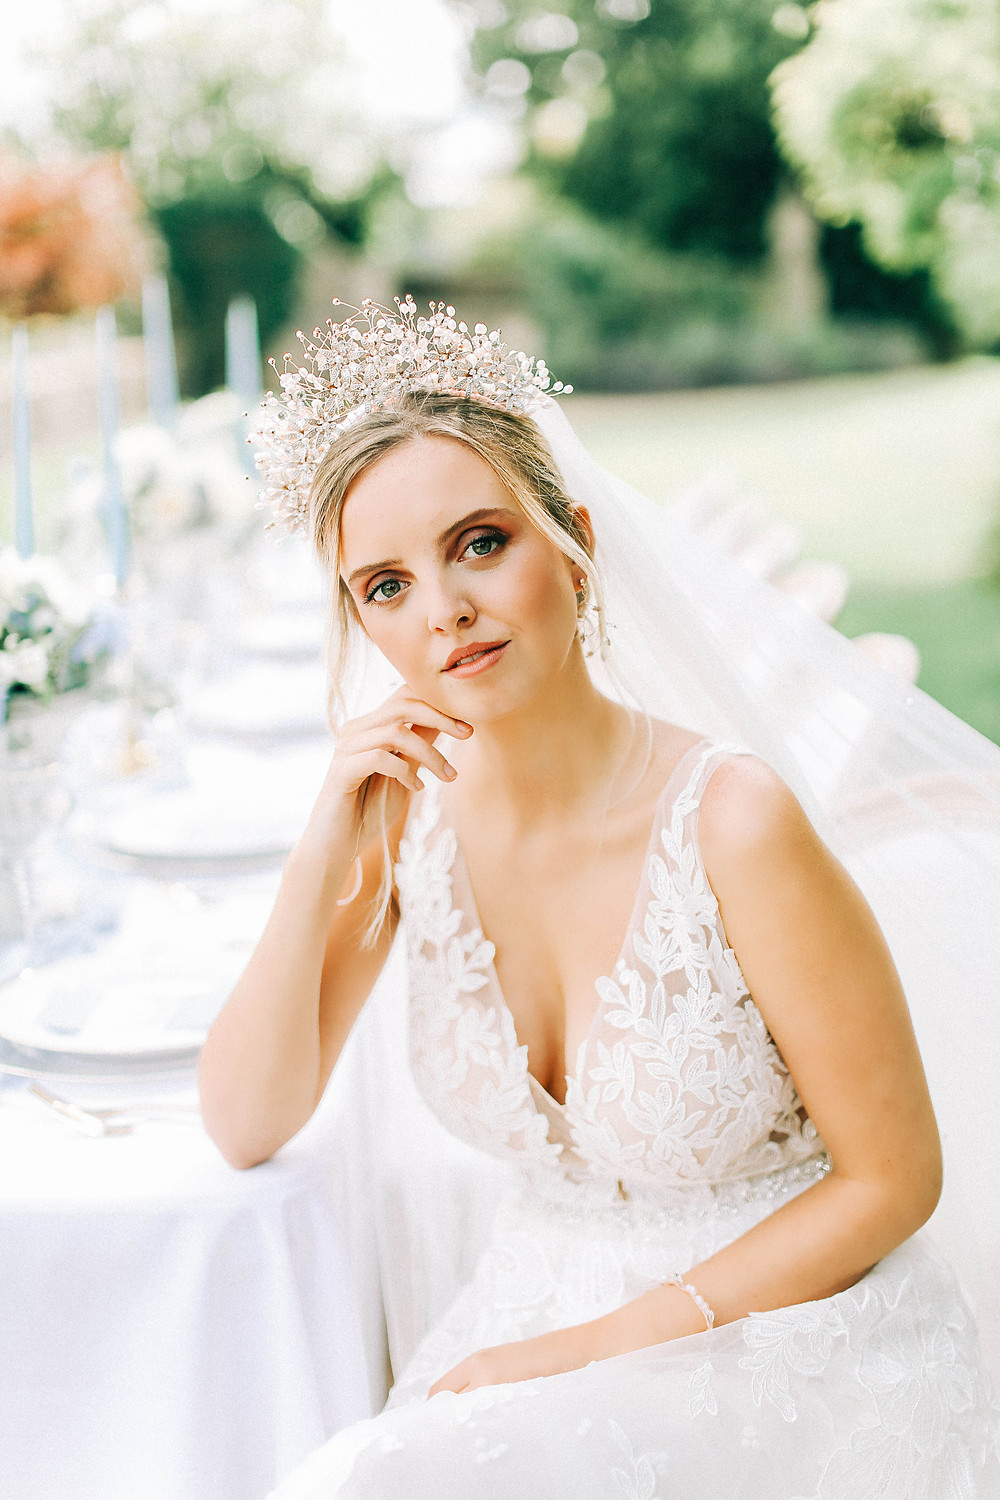 close up ofbridal tiara from Abigail grace bridal Accessories on bride